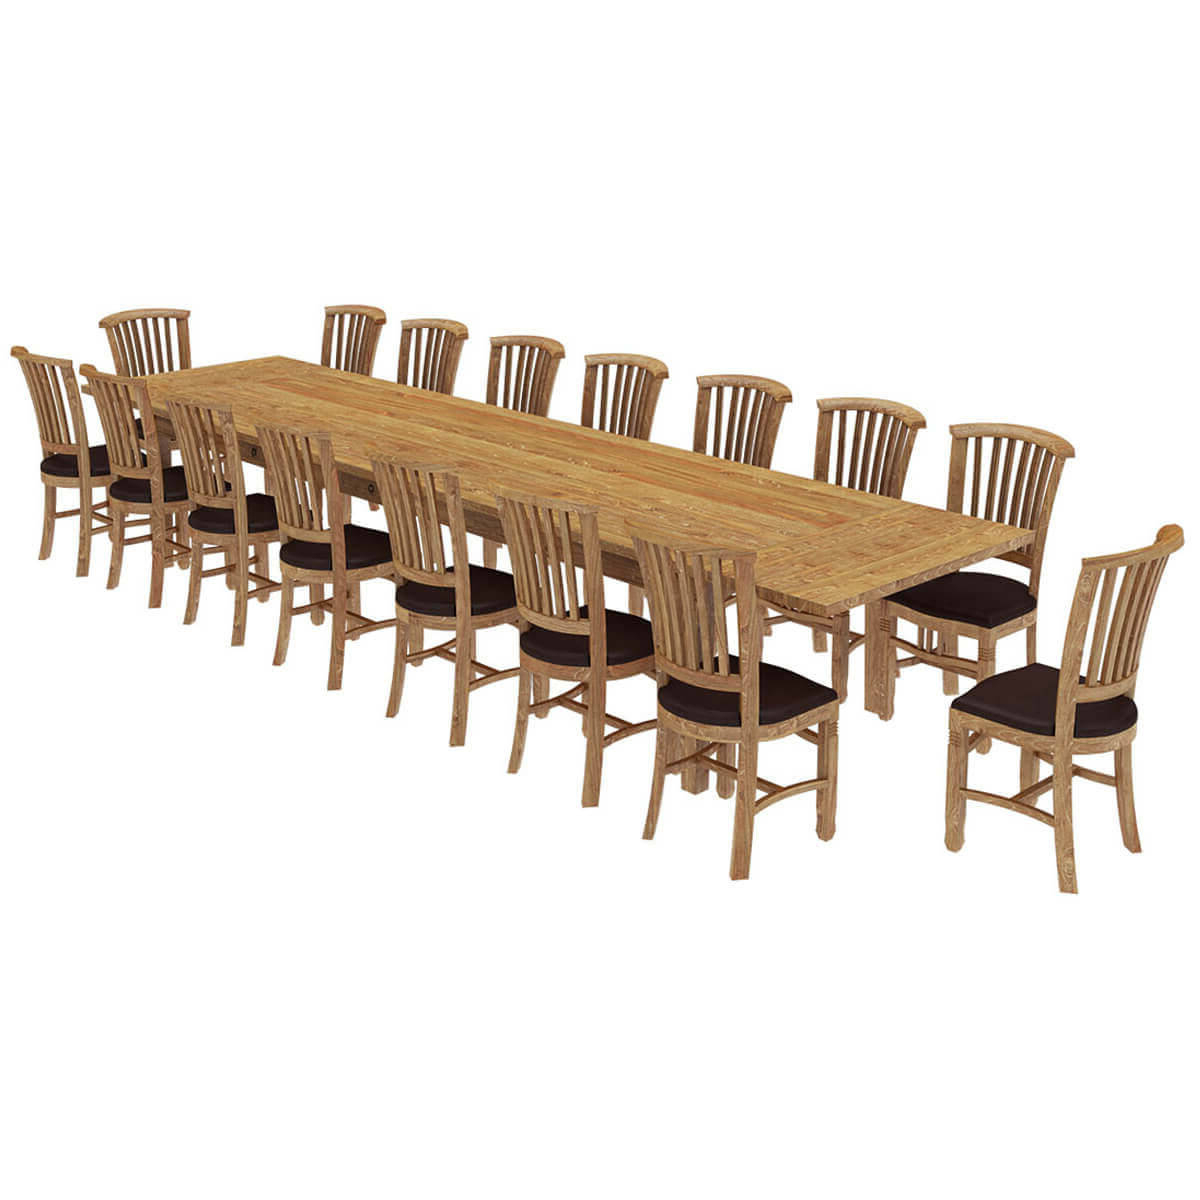 Most Recently Released Enchanting Rustic Reclaimed Wood Extending Dining Table Regarding Hart Reclaimed Extending Dining Tables (View 6 of 25)